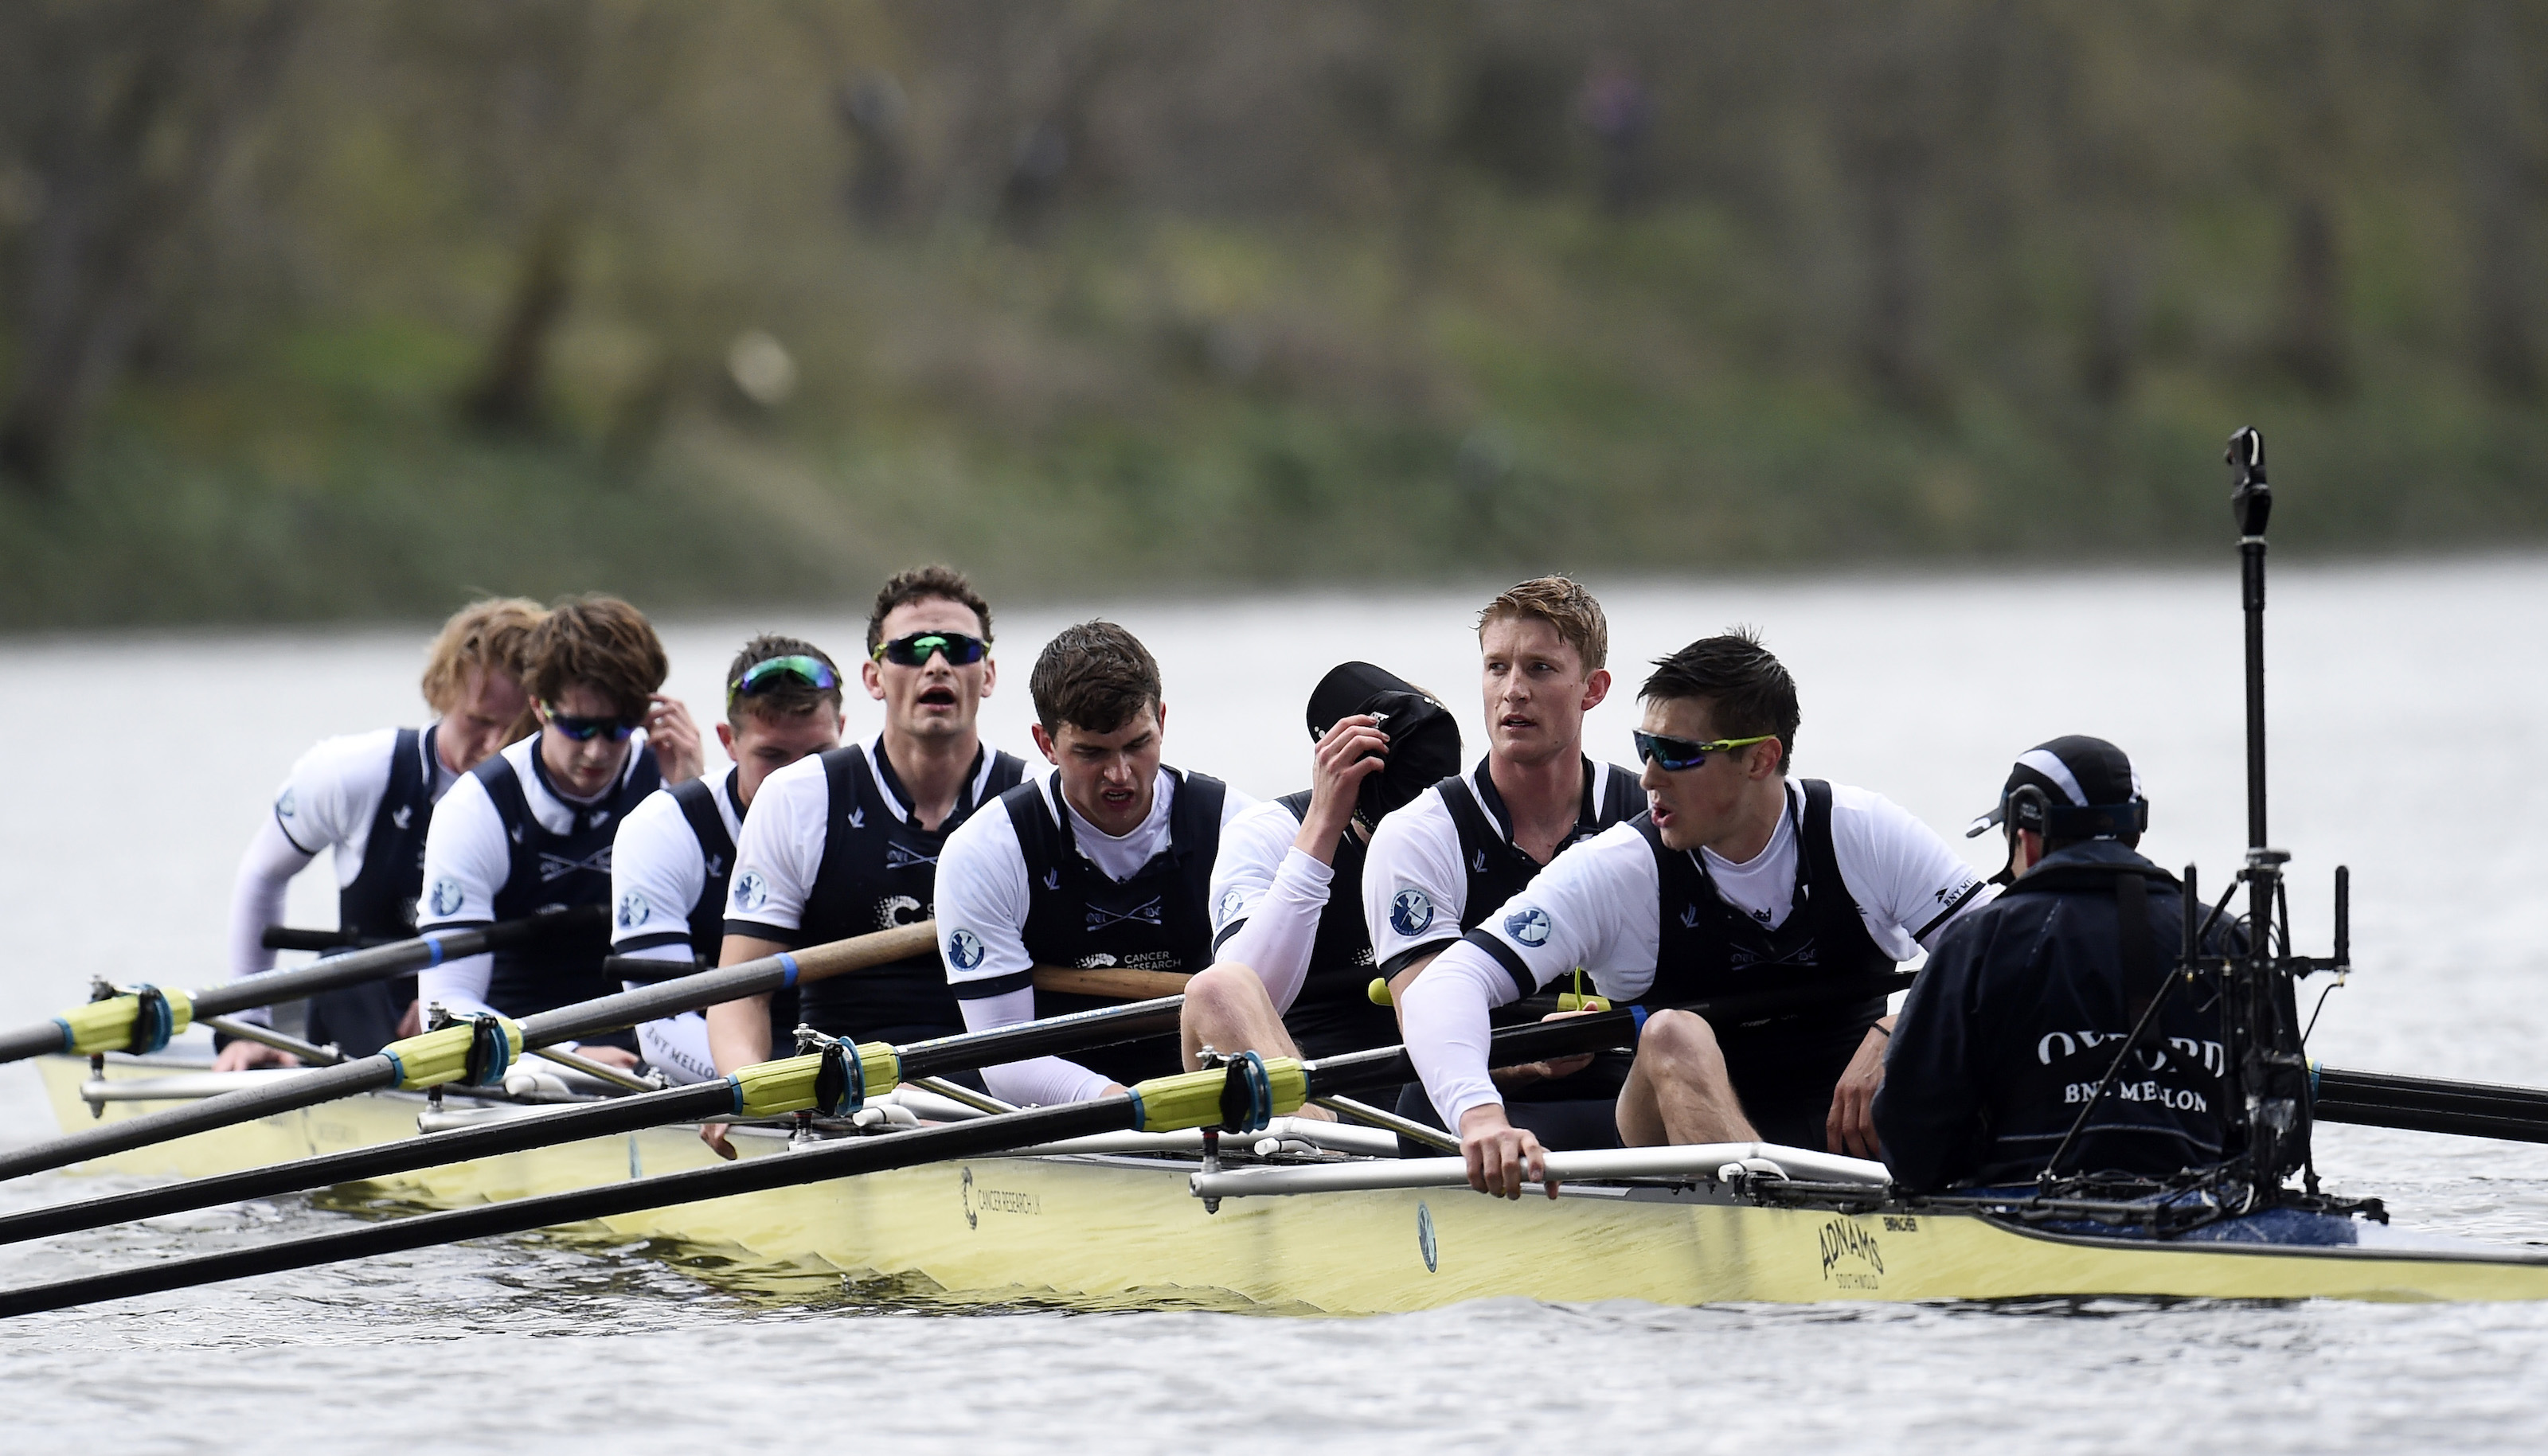 Rowing - BNY Mellon 2016 Oxford v Cambridge University Boat Race - River Thames, London - 27/3/16 The Oxford crew look dejected after the Men's Race  Reuters / Toby Melville Livepic EDITORIAL USE ONLY. - RTSCEZH